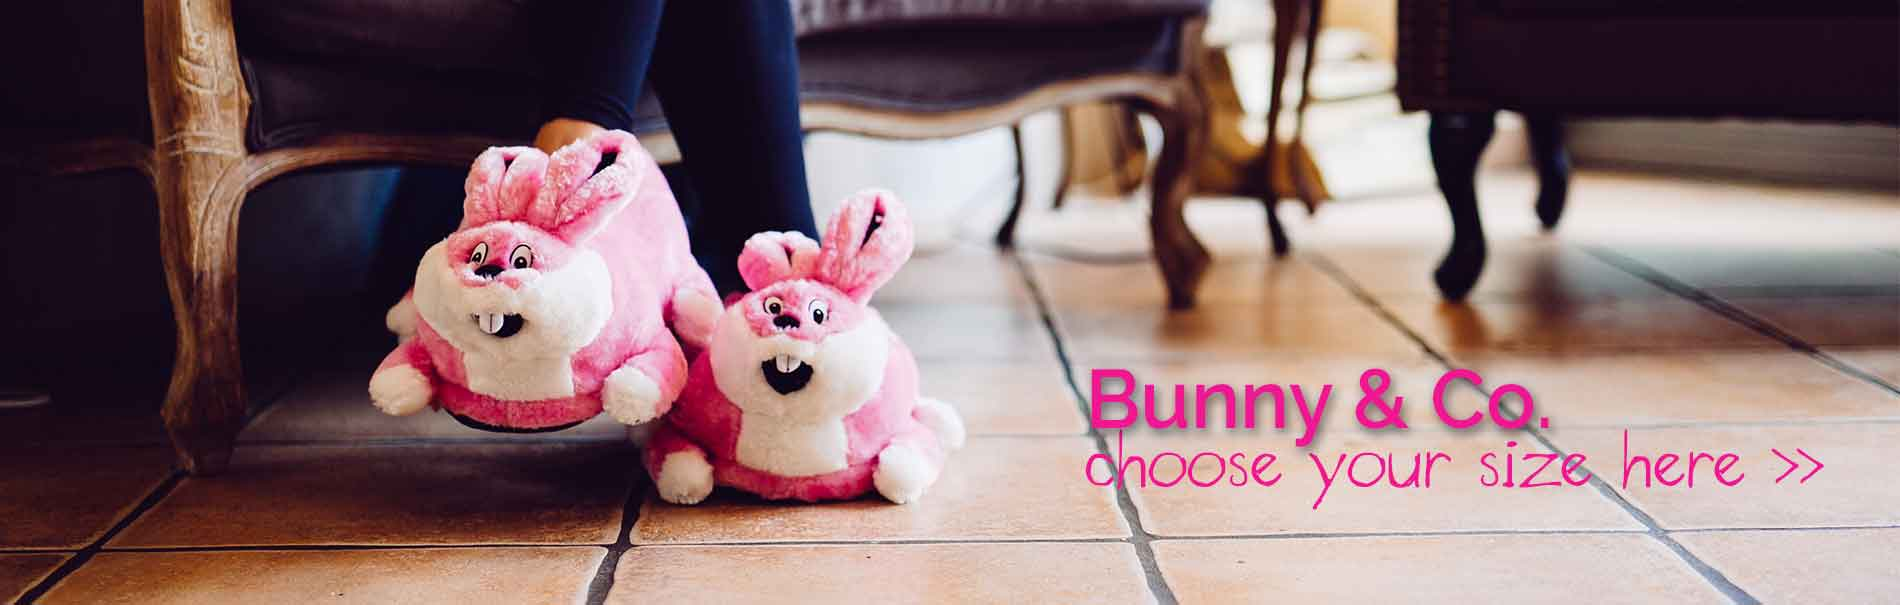 choose your own bunny slippers